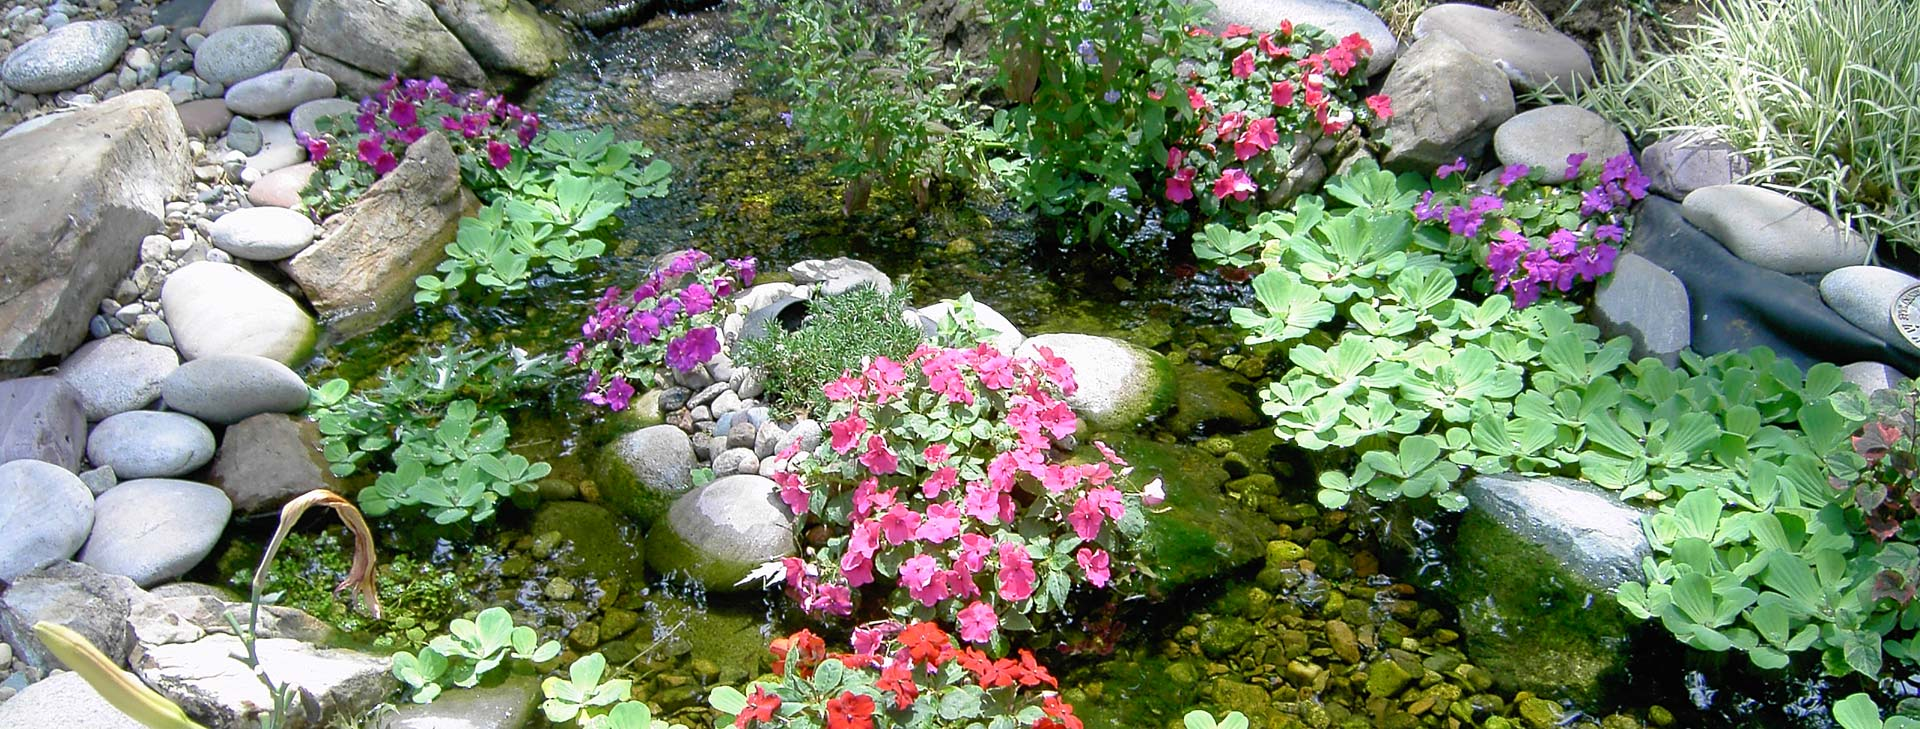 Pond with beautiful flowers and green plants